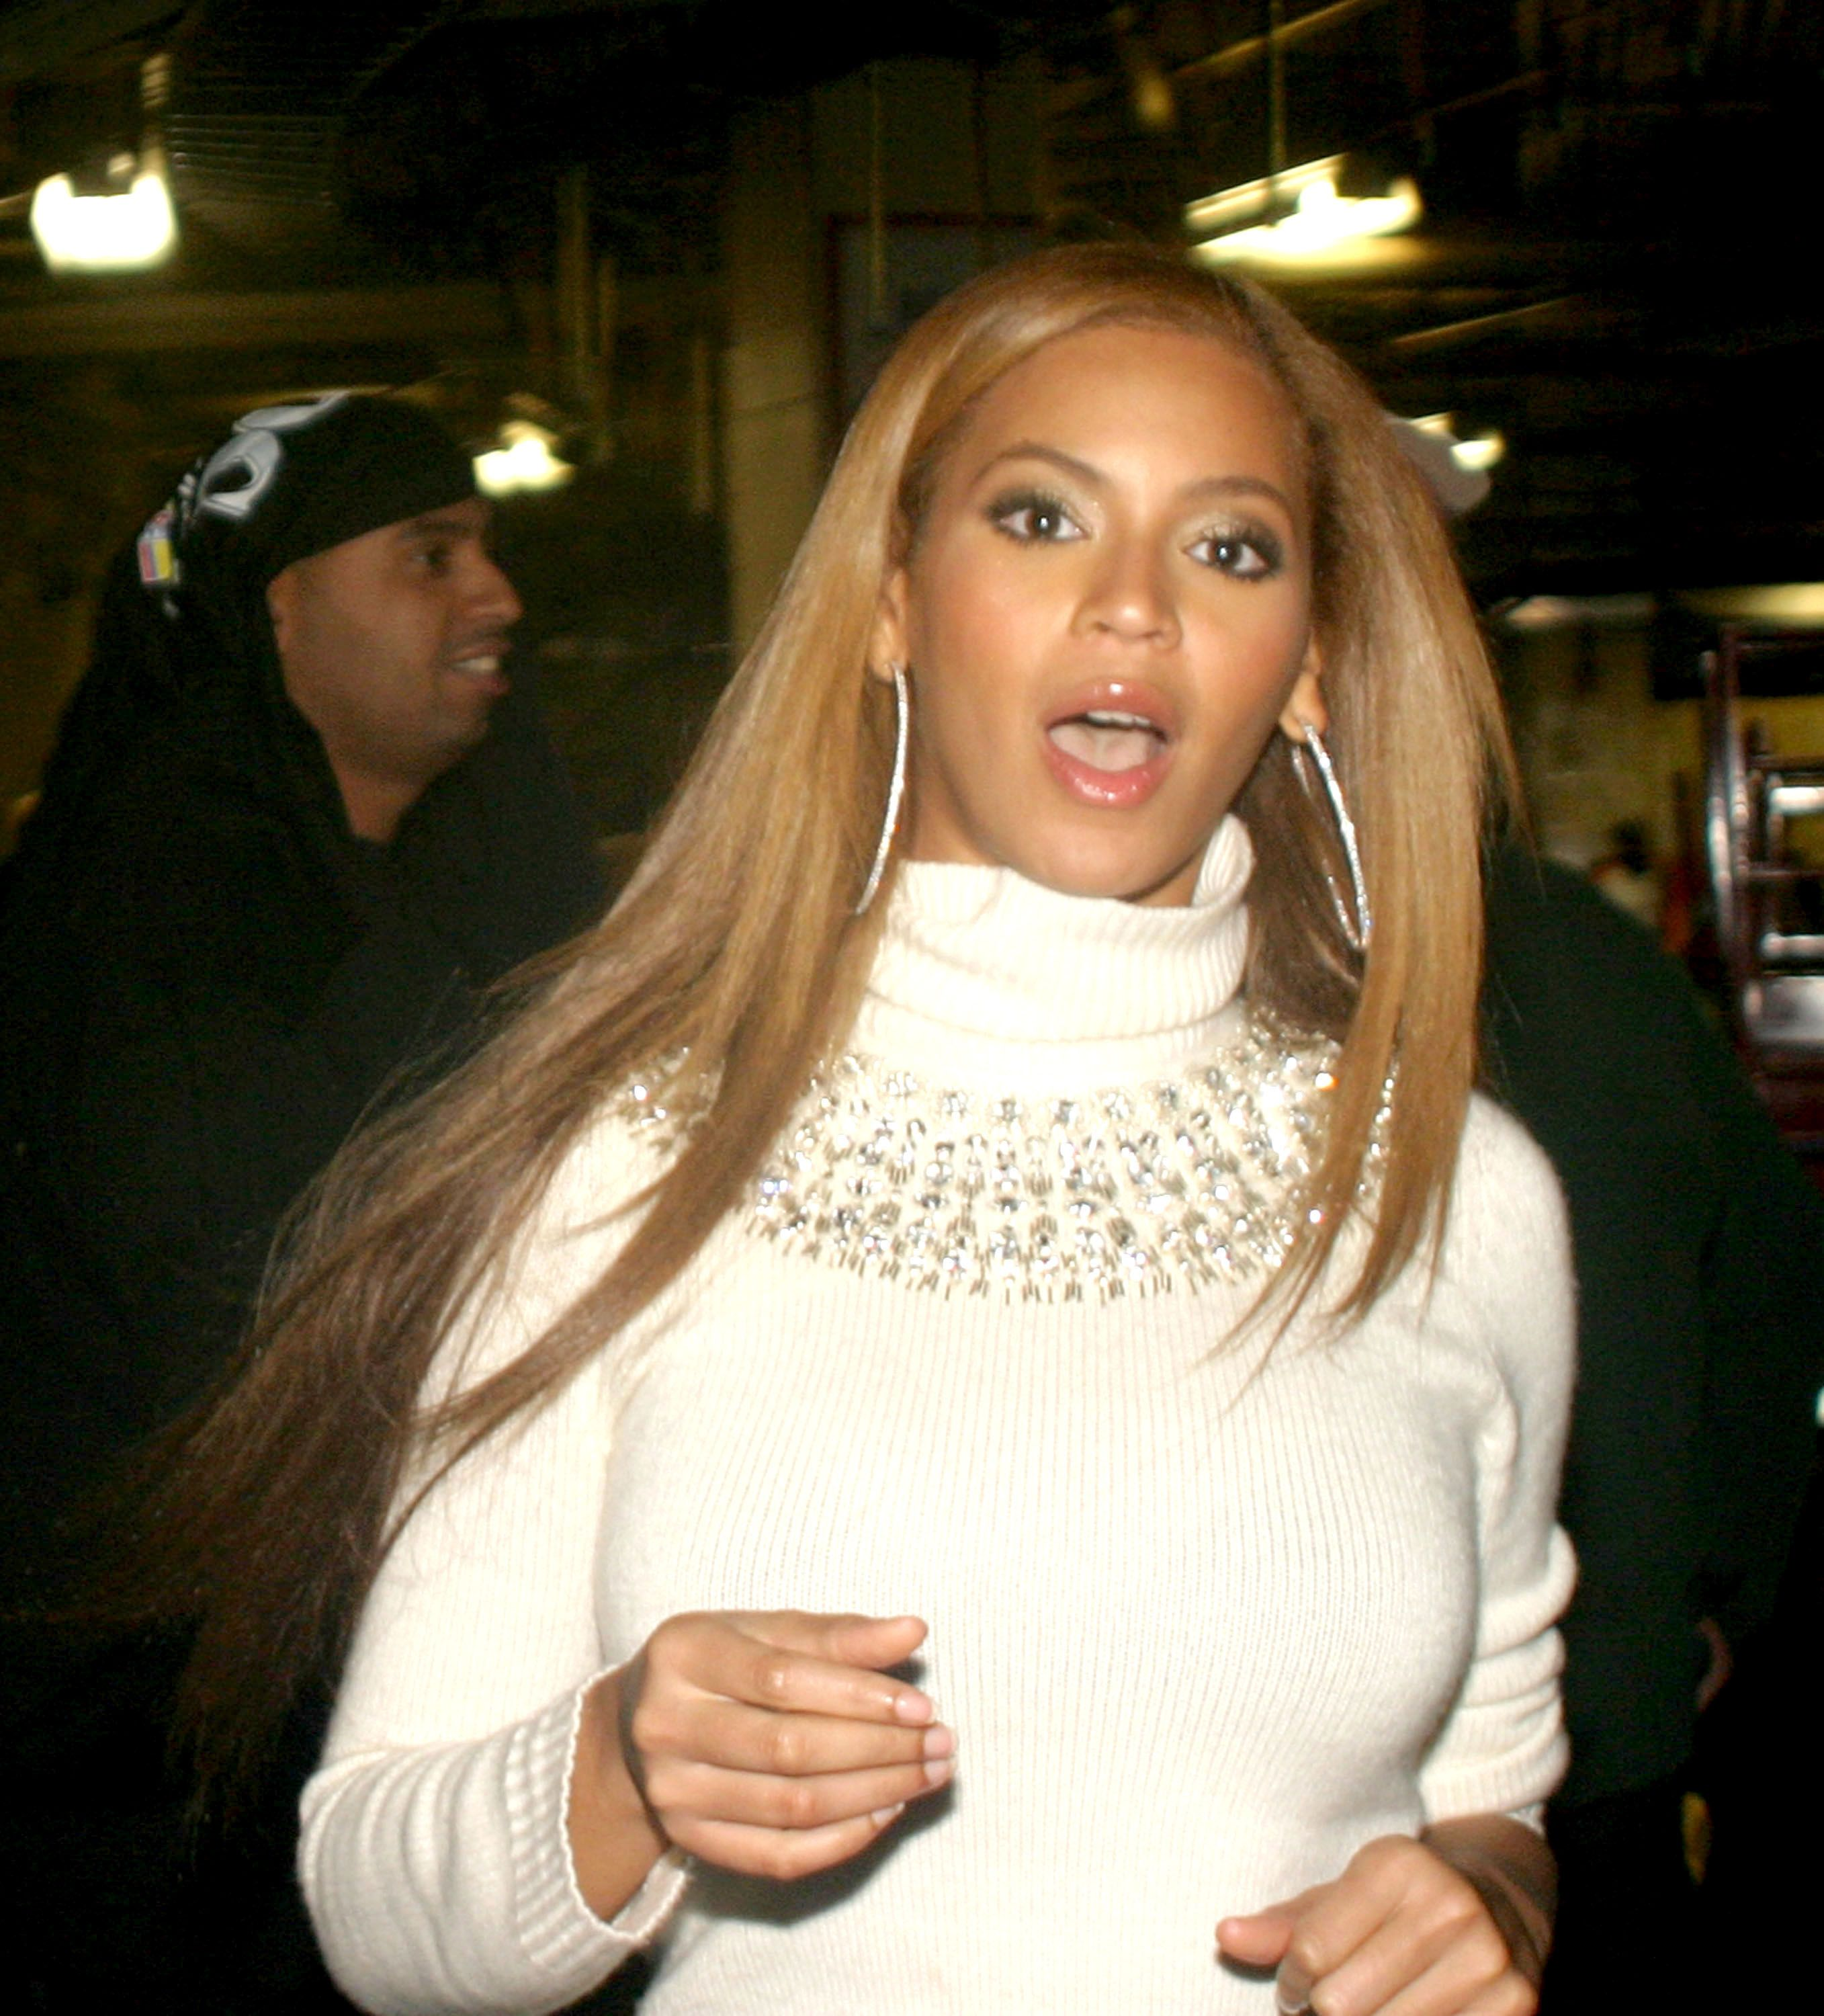 """Beyonce at Power 105.1 FM presenting Jay-Z's """"I Declare War"""" concert on October 27, 2005 in N.Y. 